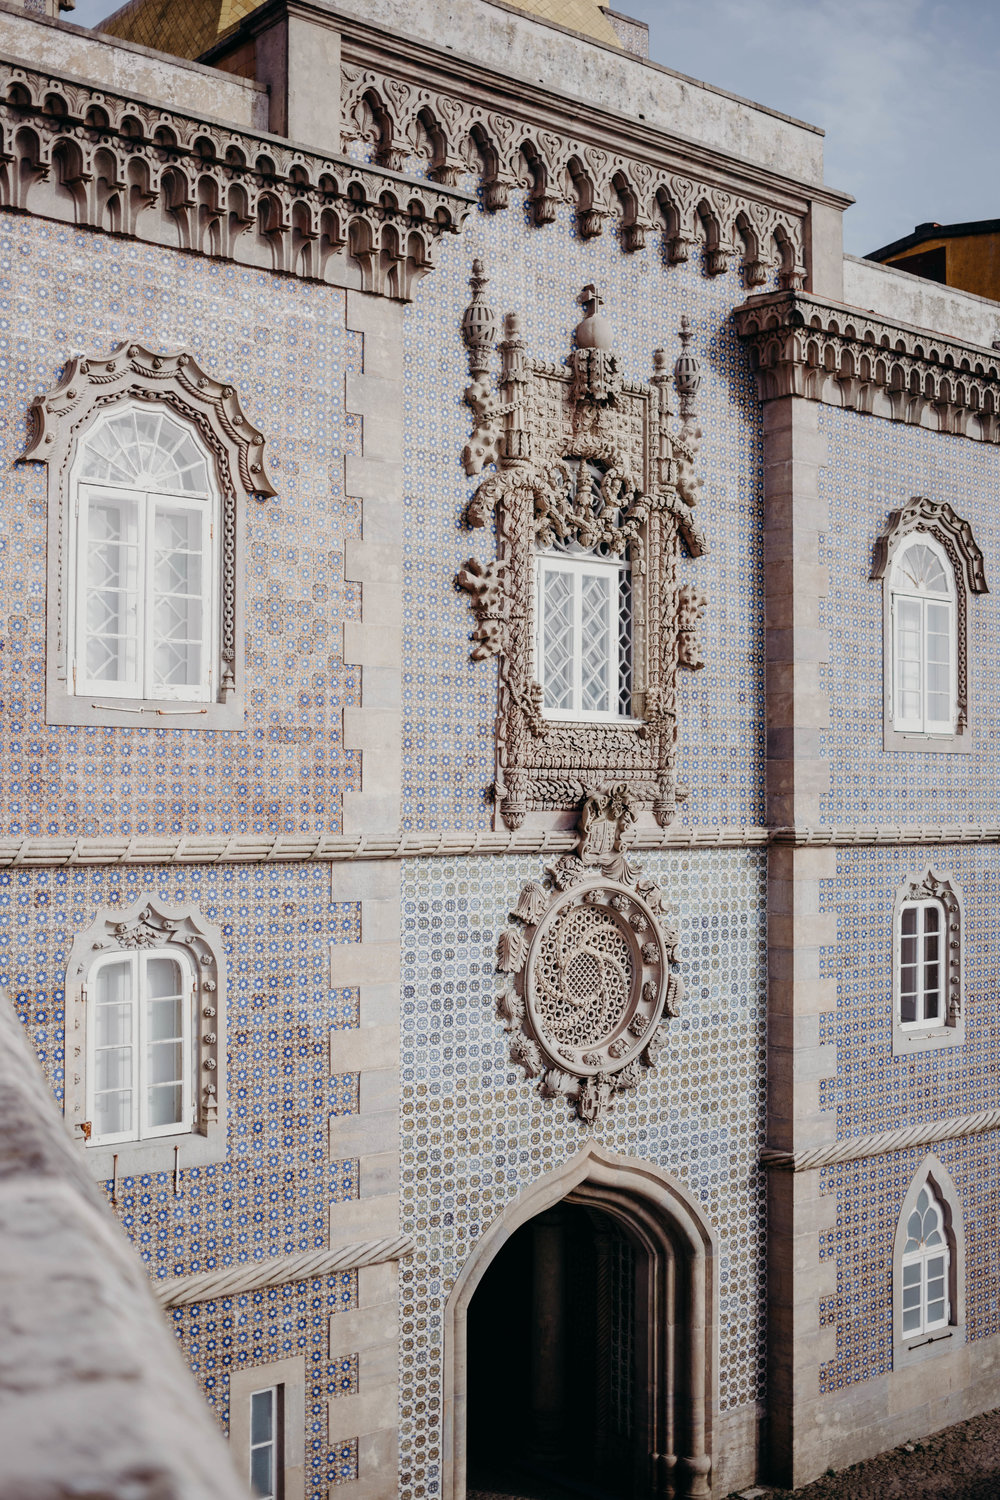 Our Portugal Travel Diary: Lisbon, Porto, and More | On the Street Where We Live (aretherelilactrees.com)  Sintra, Palacio da Pena, Pena Palace, National Palace of Pena